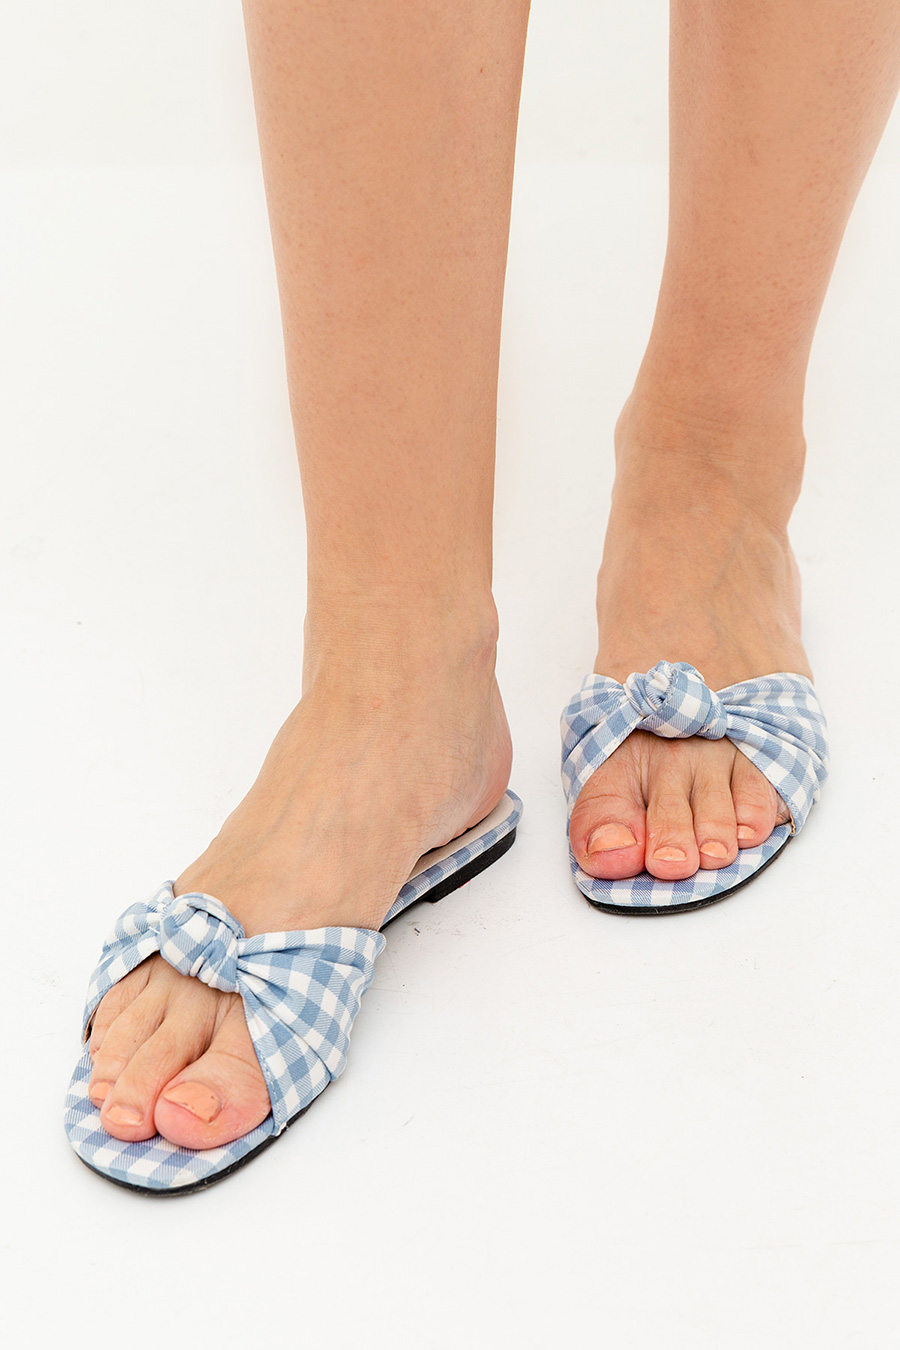 JULIETTE SHOES - GINGHAM